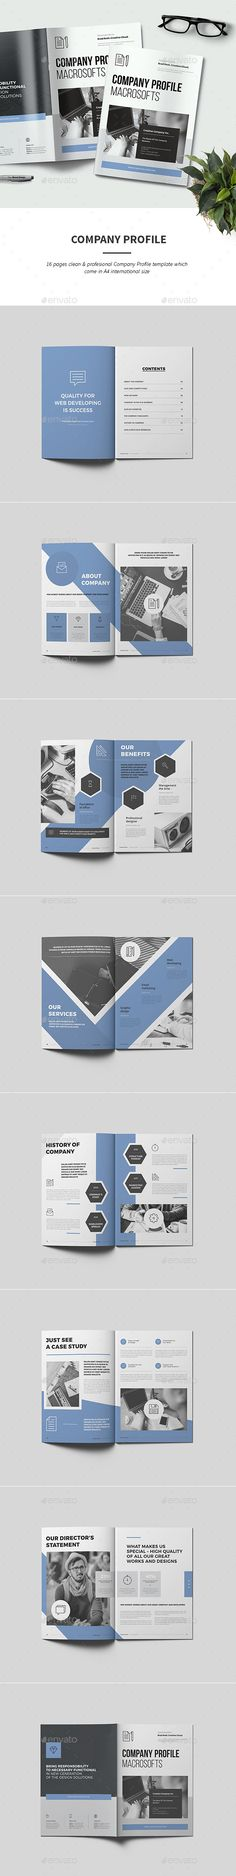 University - College Brochure Template - 16 Pages ...